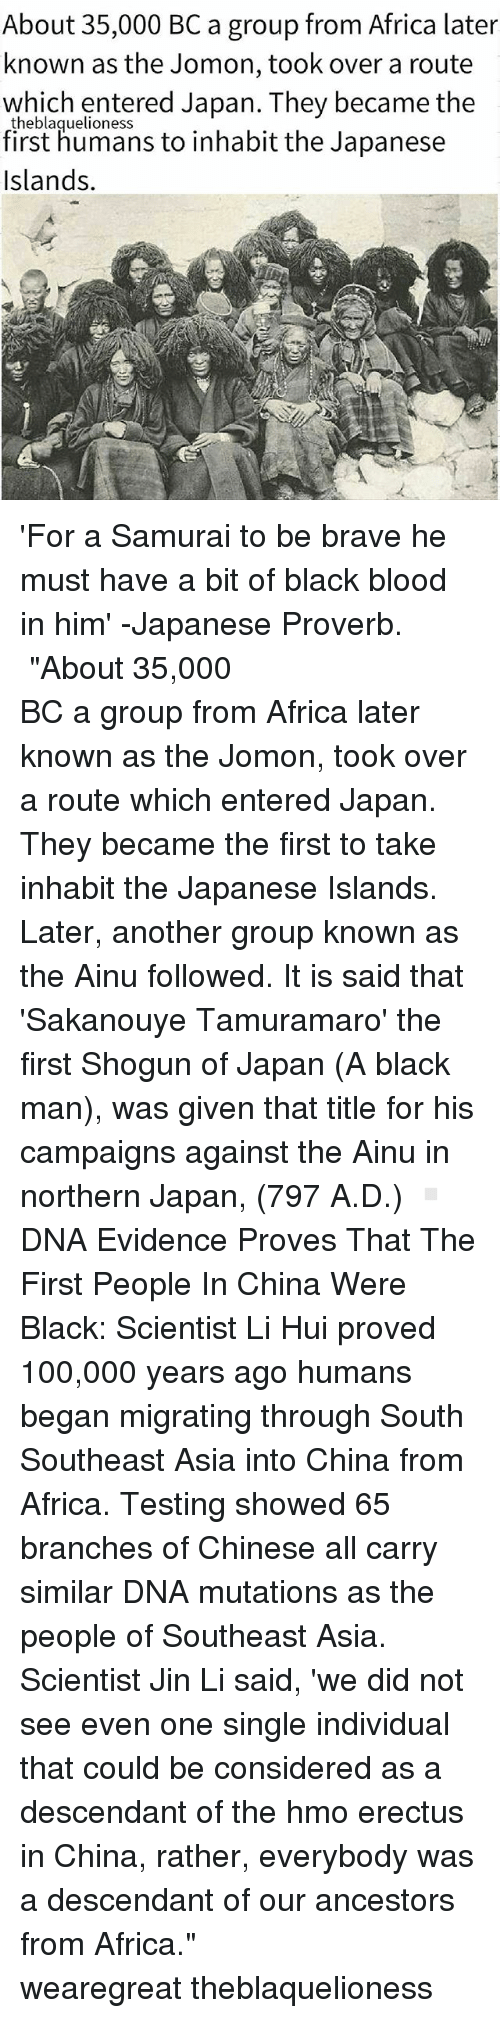 """Black Scientist: About 35,000 BC a group from Africa later  known as the Jomon, took over a route  which entered Japan. They became the  theblaquelioness  first humans to inhabit the Japanese  Islands. 'For a Samurai to be brave he must have a bit of black blood in him' -Japanese Proverb. ┈┈┈┈┈┈┈┈┈┈┈┈┈┈┈┈┈┈┈┈┈┈┈ """"About 35,000 BC a group from Africa later known as the Jomon, took over a route which entered Japan. They became the first to take inhabit the Japanese Islands. Later, another group known as the Ainu followed. It is said that 'Sakanouye Tamuramaro' the first Shogun of Japan (A black man), was given that title for his campaigns against the Ainu in northern Japan, (797 A.D.) ▫ DNA Evidence Proves That The First People In China Were Black: Scientist Li Hui proved 100,000 years ago humans began migrating through South Southeast Asia into China from Africa. Testing showed 65 branches of Chinese all carry similar DNA mutations as the people of Southeast Asia. Scientist Jin Li said, 'we did not see even one single individual that could be considered as a descendant of the hοmo erectus in China, rather, everybody was a descendant of our ancestors from Africa."""" ┈┈┈┈┈┈┈┈┈┈┈┈┈┈┈┈┈┈┈┈┈┈┈ wearegreat theblaquelioness"""